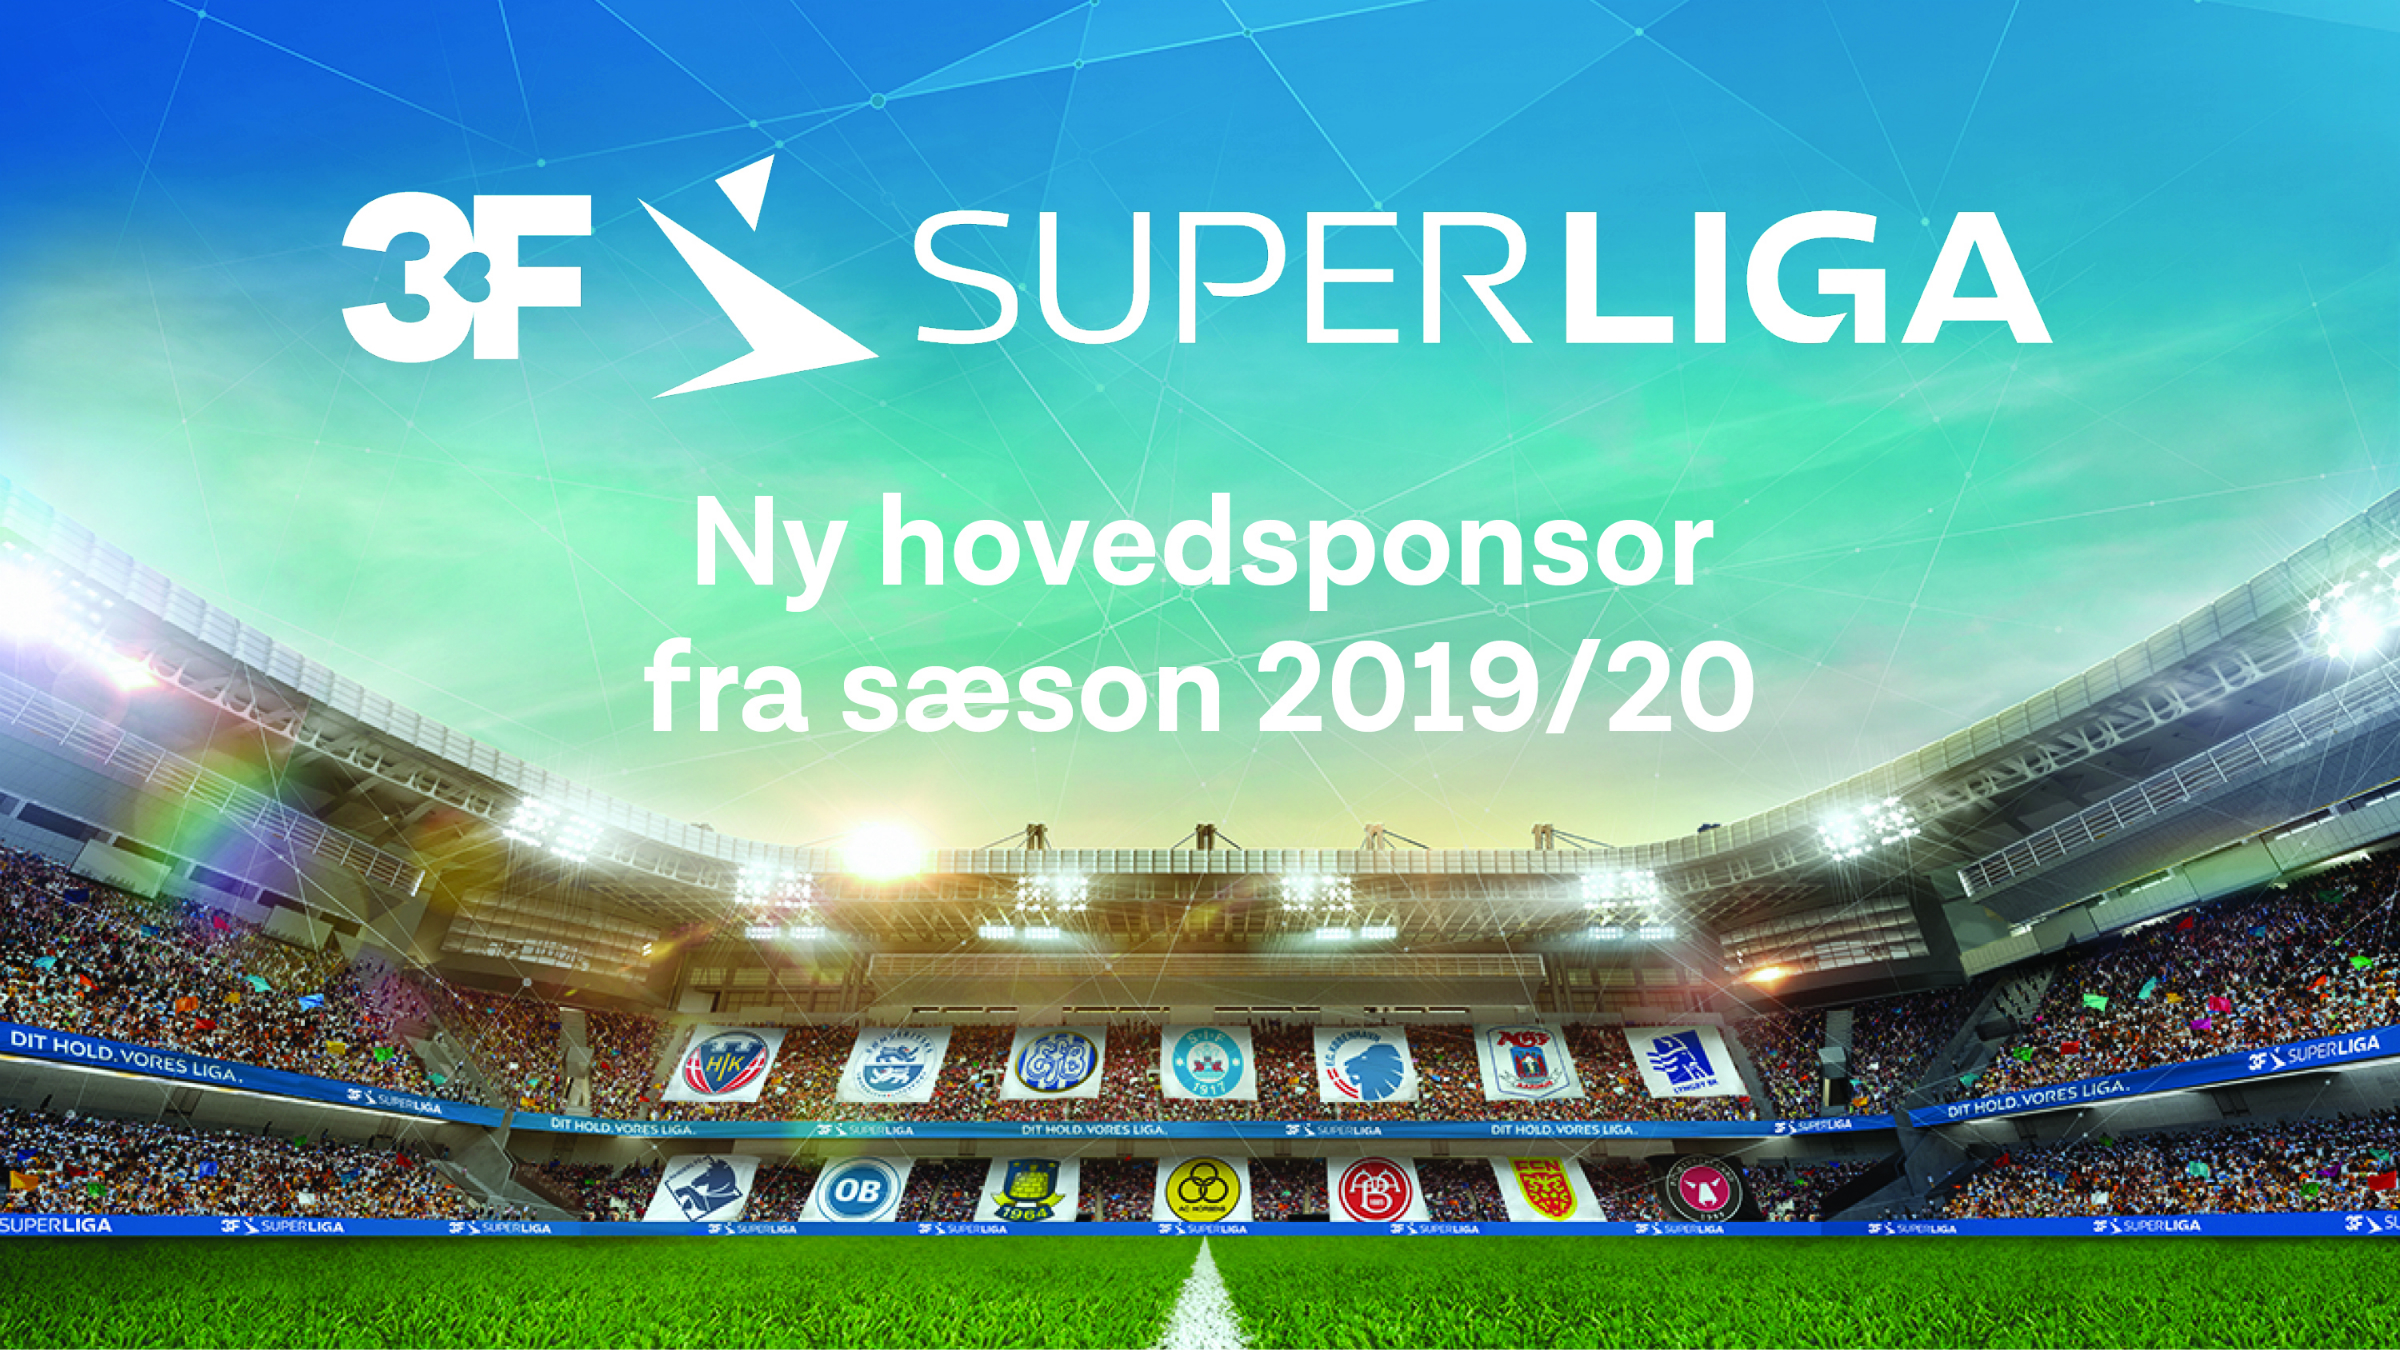 Superliga Sponsor